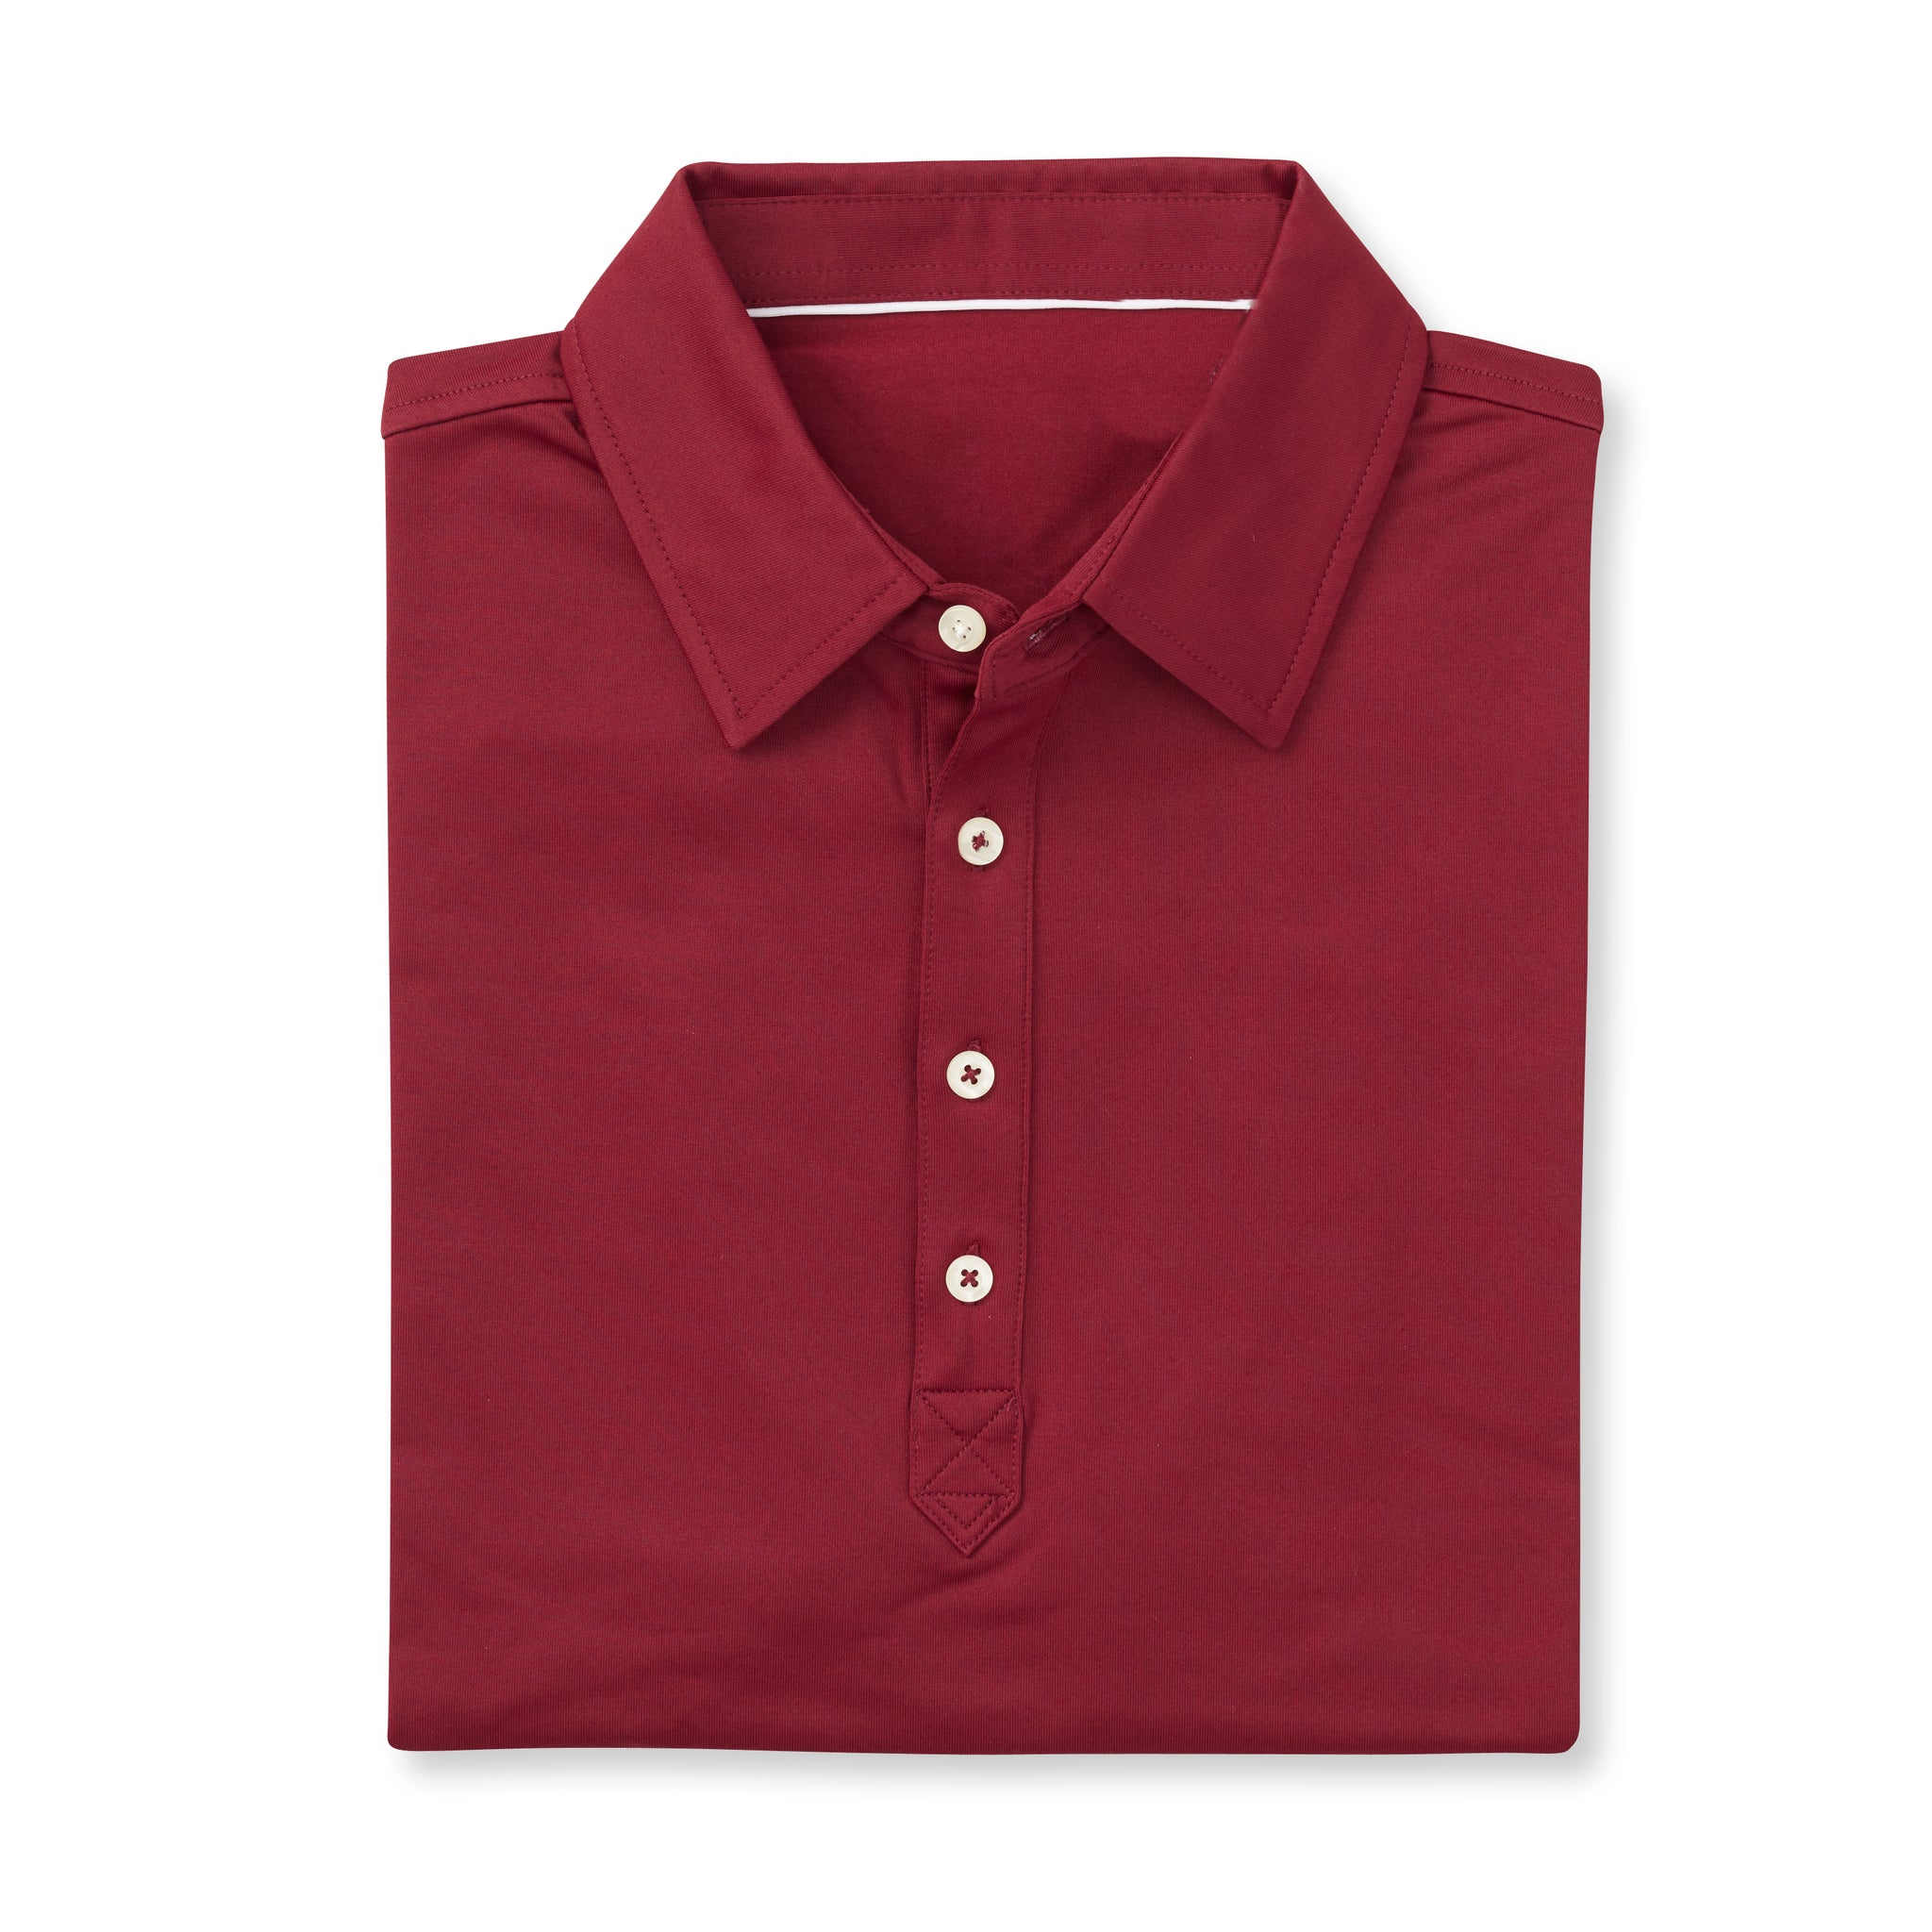 LUXTEC Champions Short Sleeve Polo - Merlot IS72400